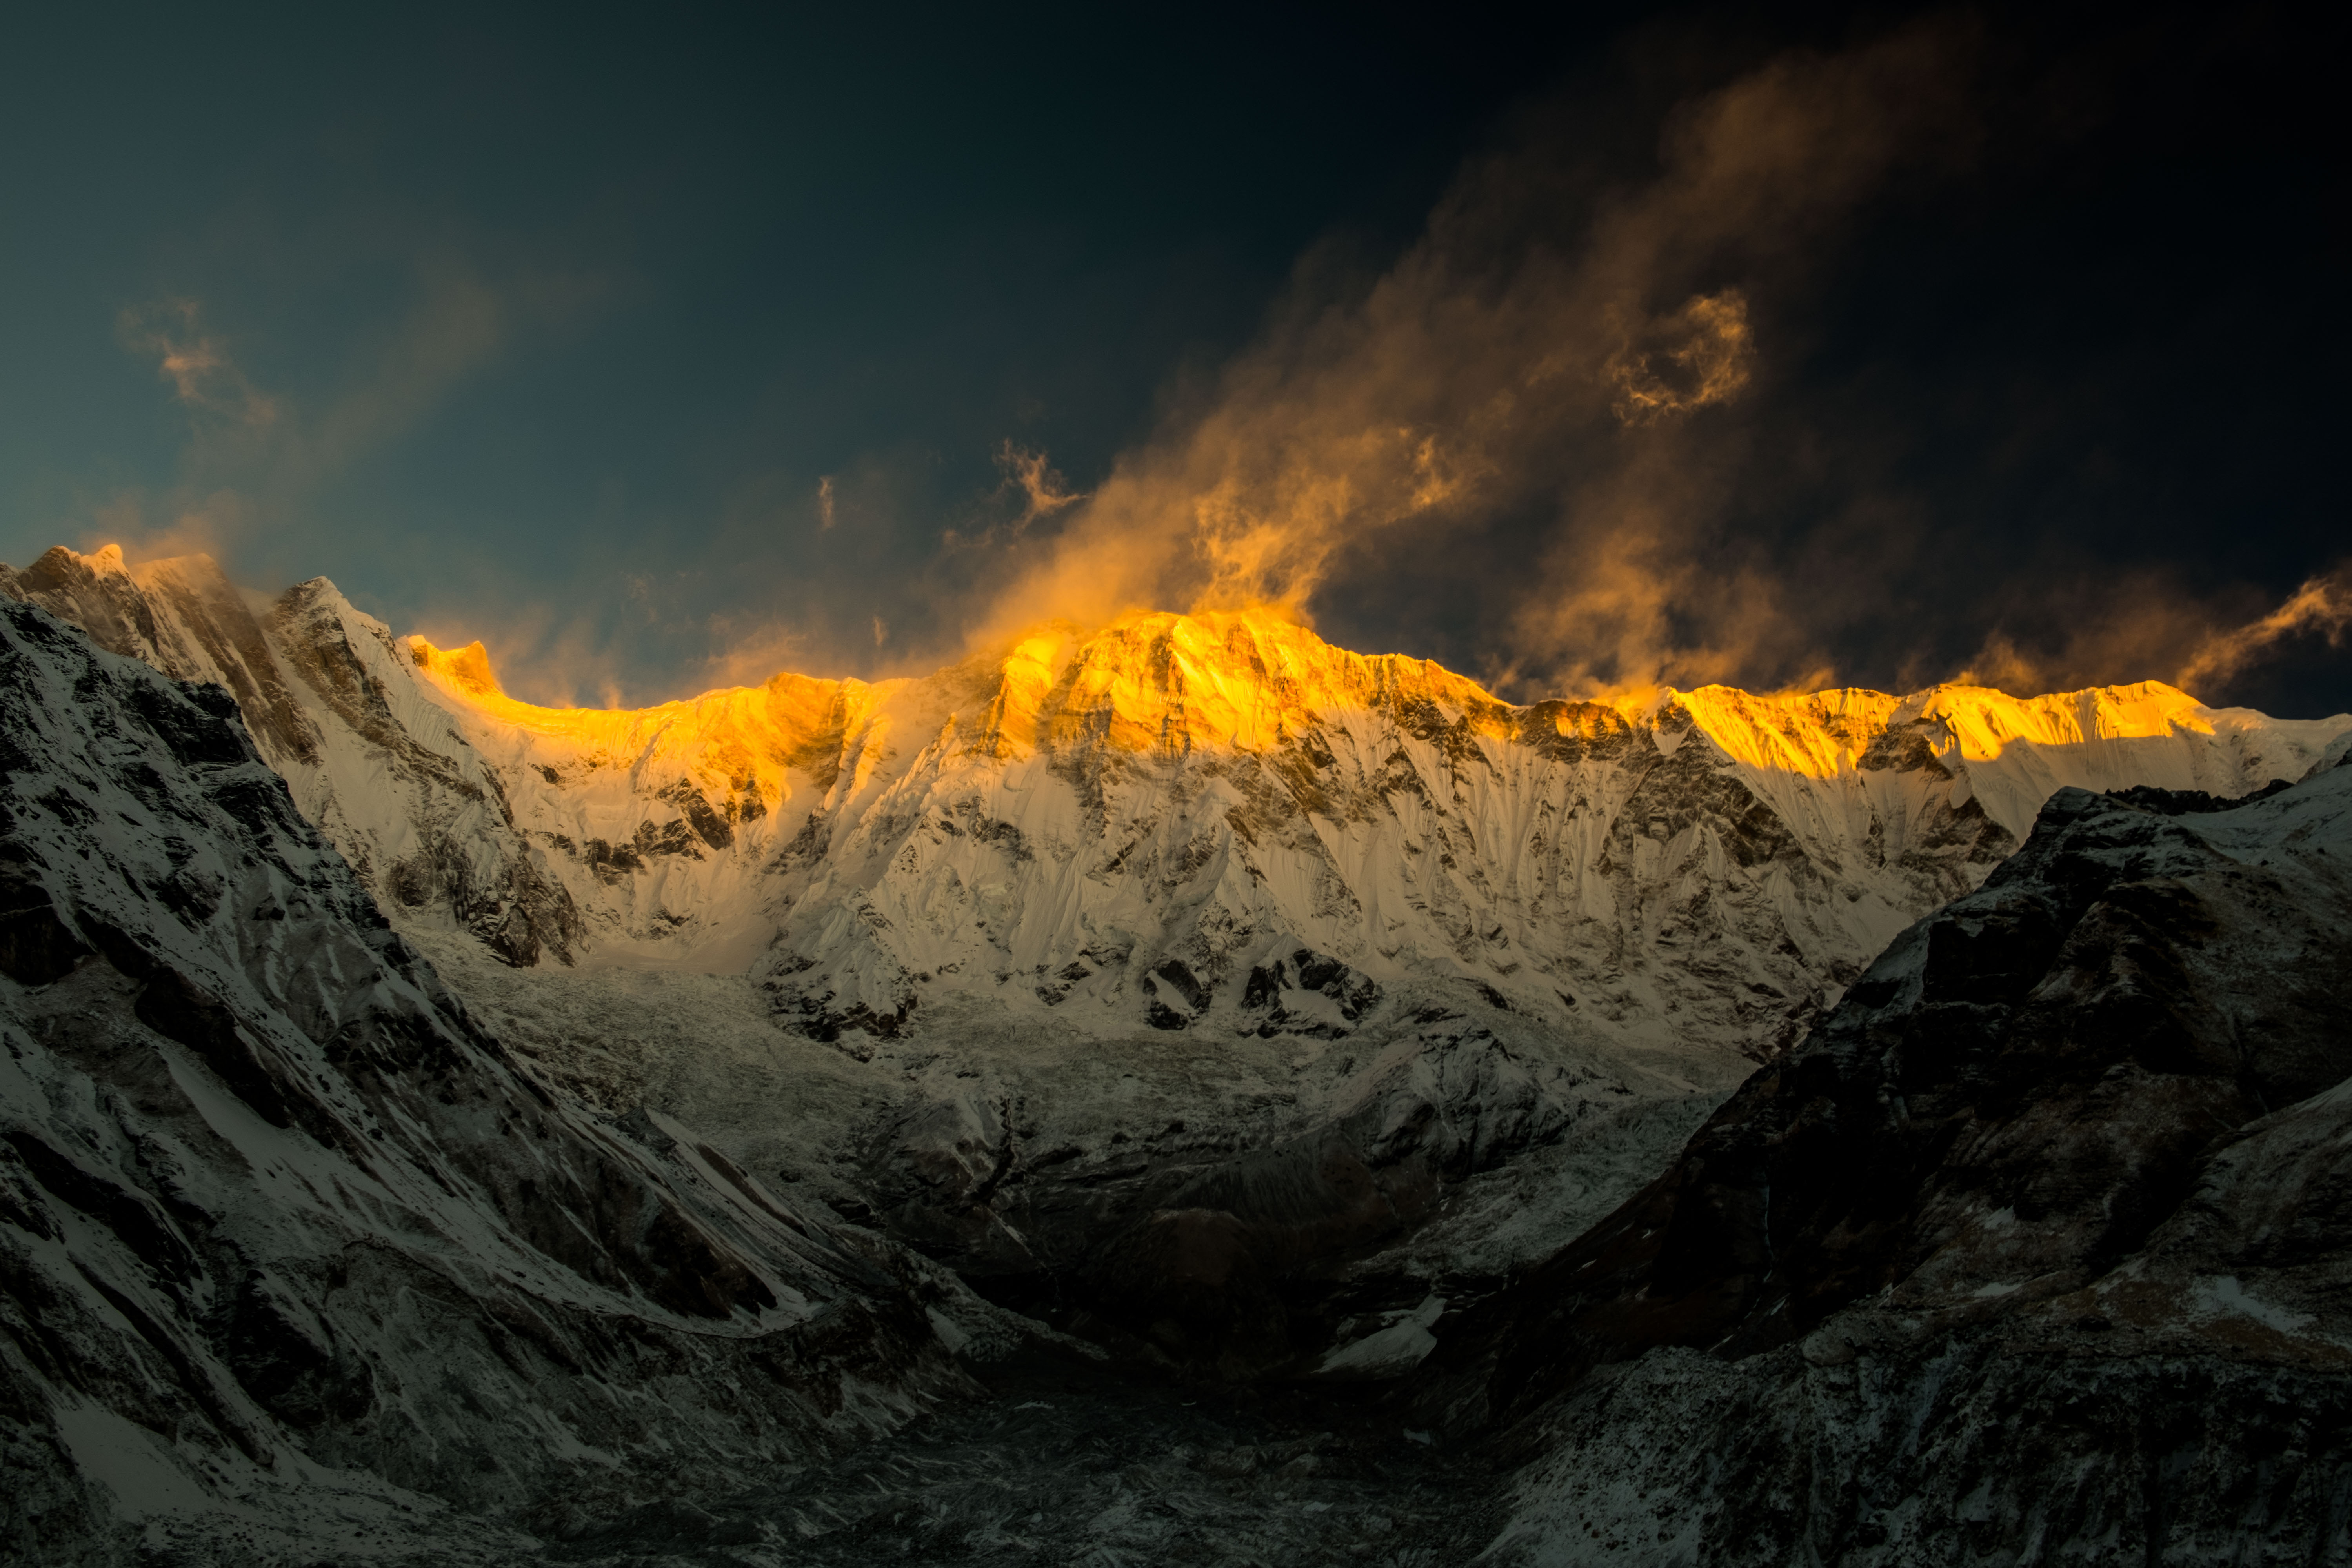 General 5997x3998 nature landscape mountains sunset clouds